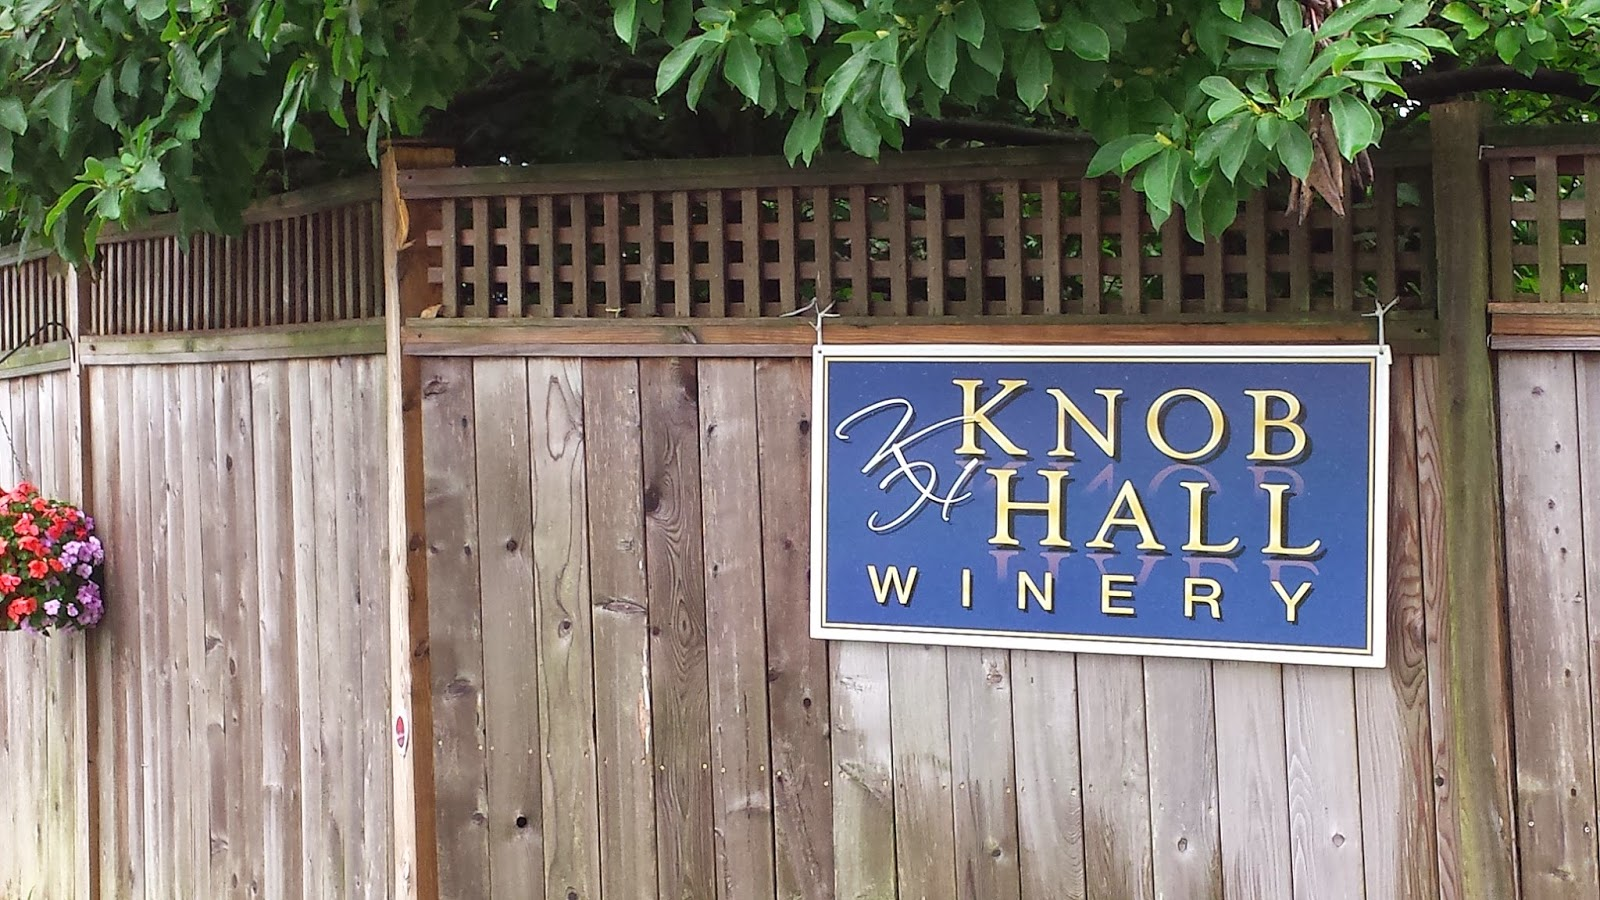 Winecompass A Quick Visit To Knob Hall Winery In Maryland